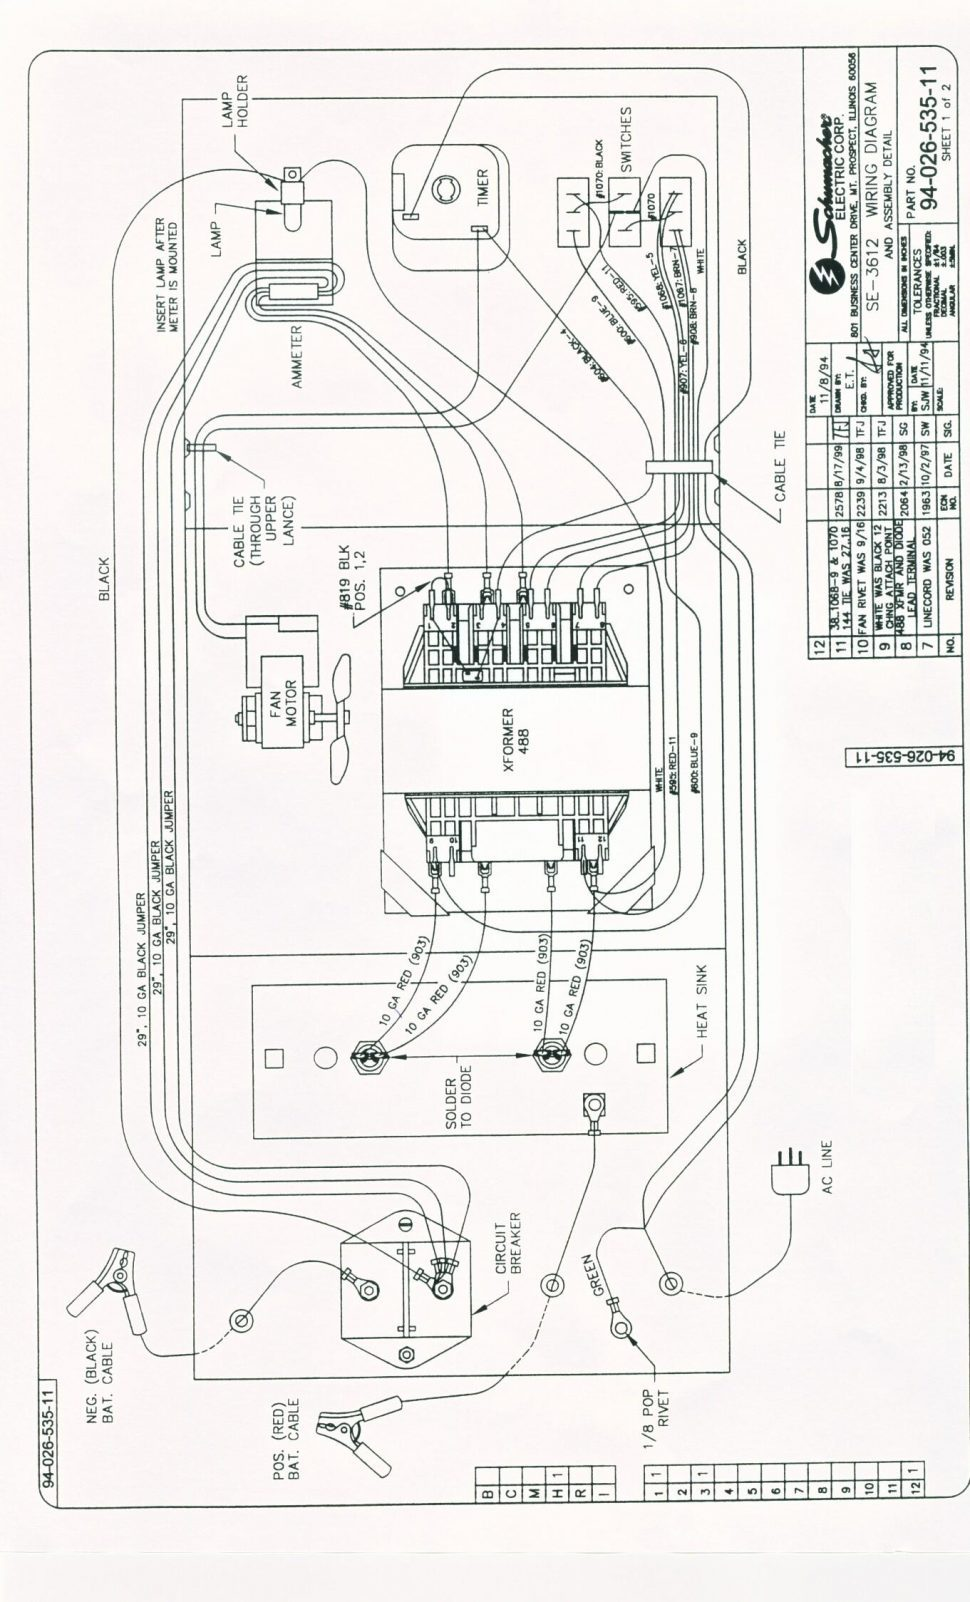 hight resolution of 970x1602 how to read wiring diagramc schematic compressor single phase wire